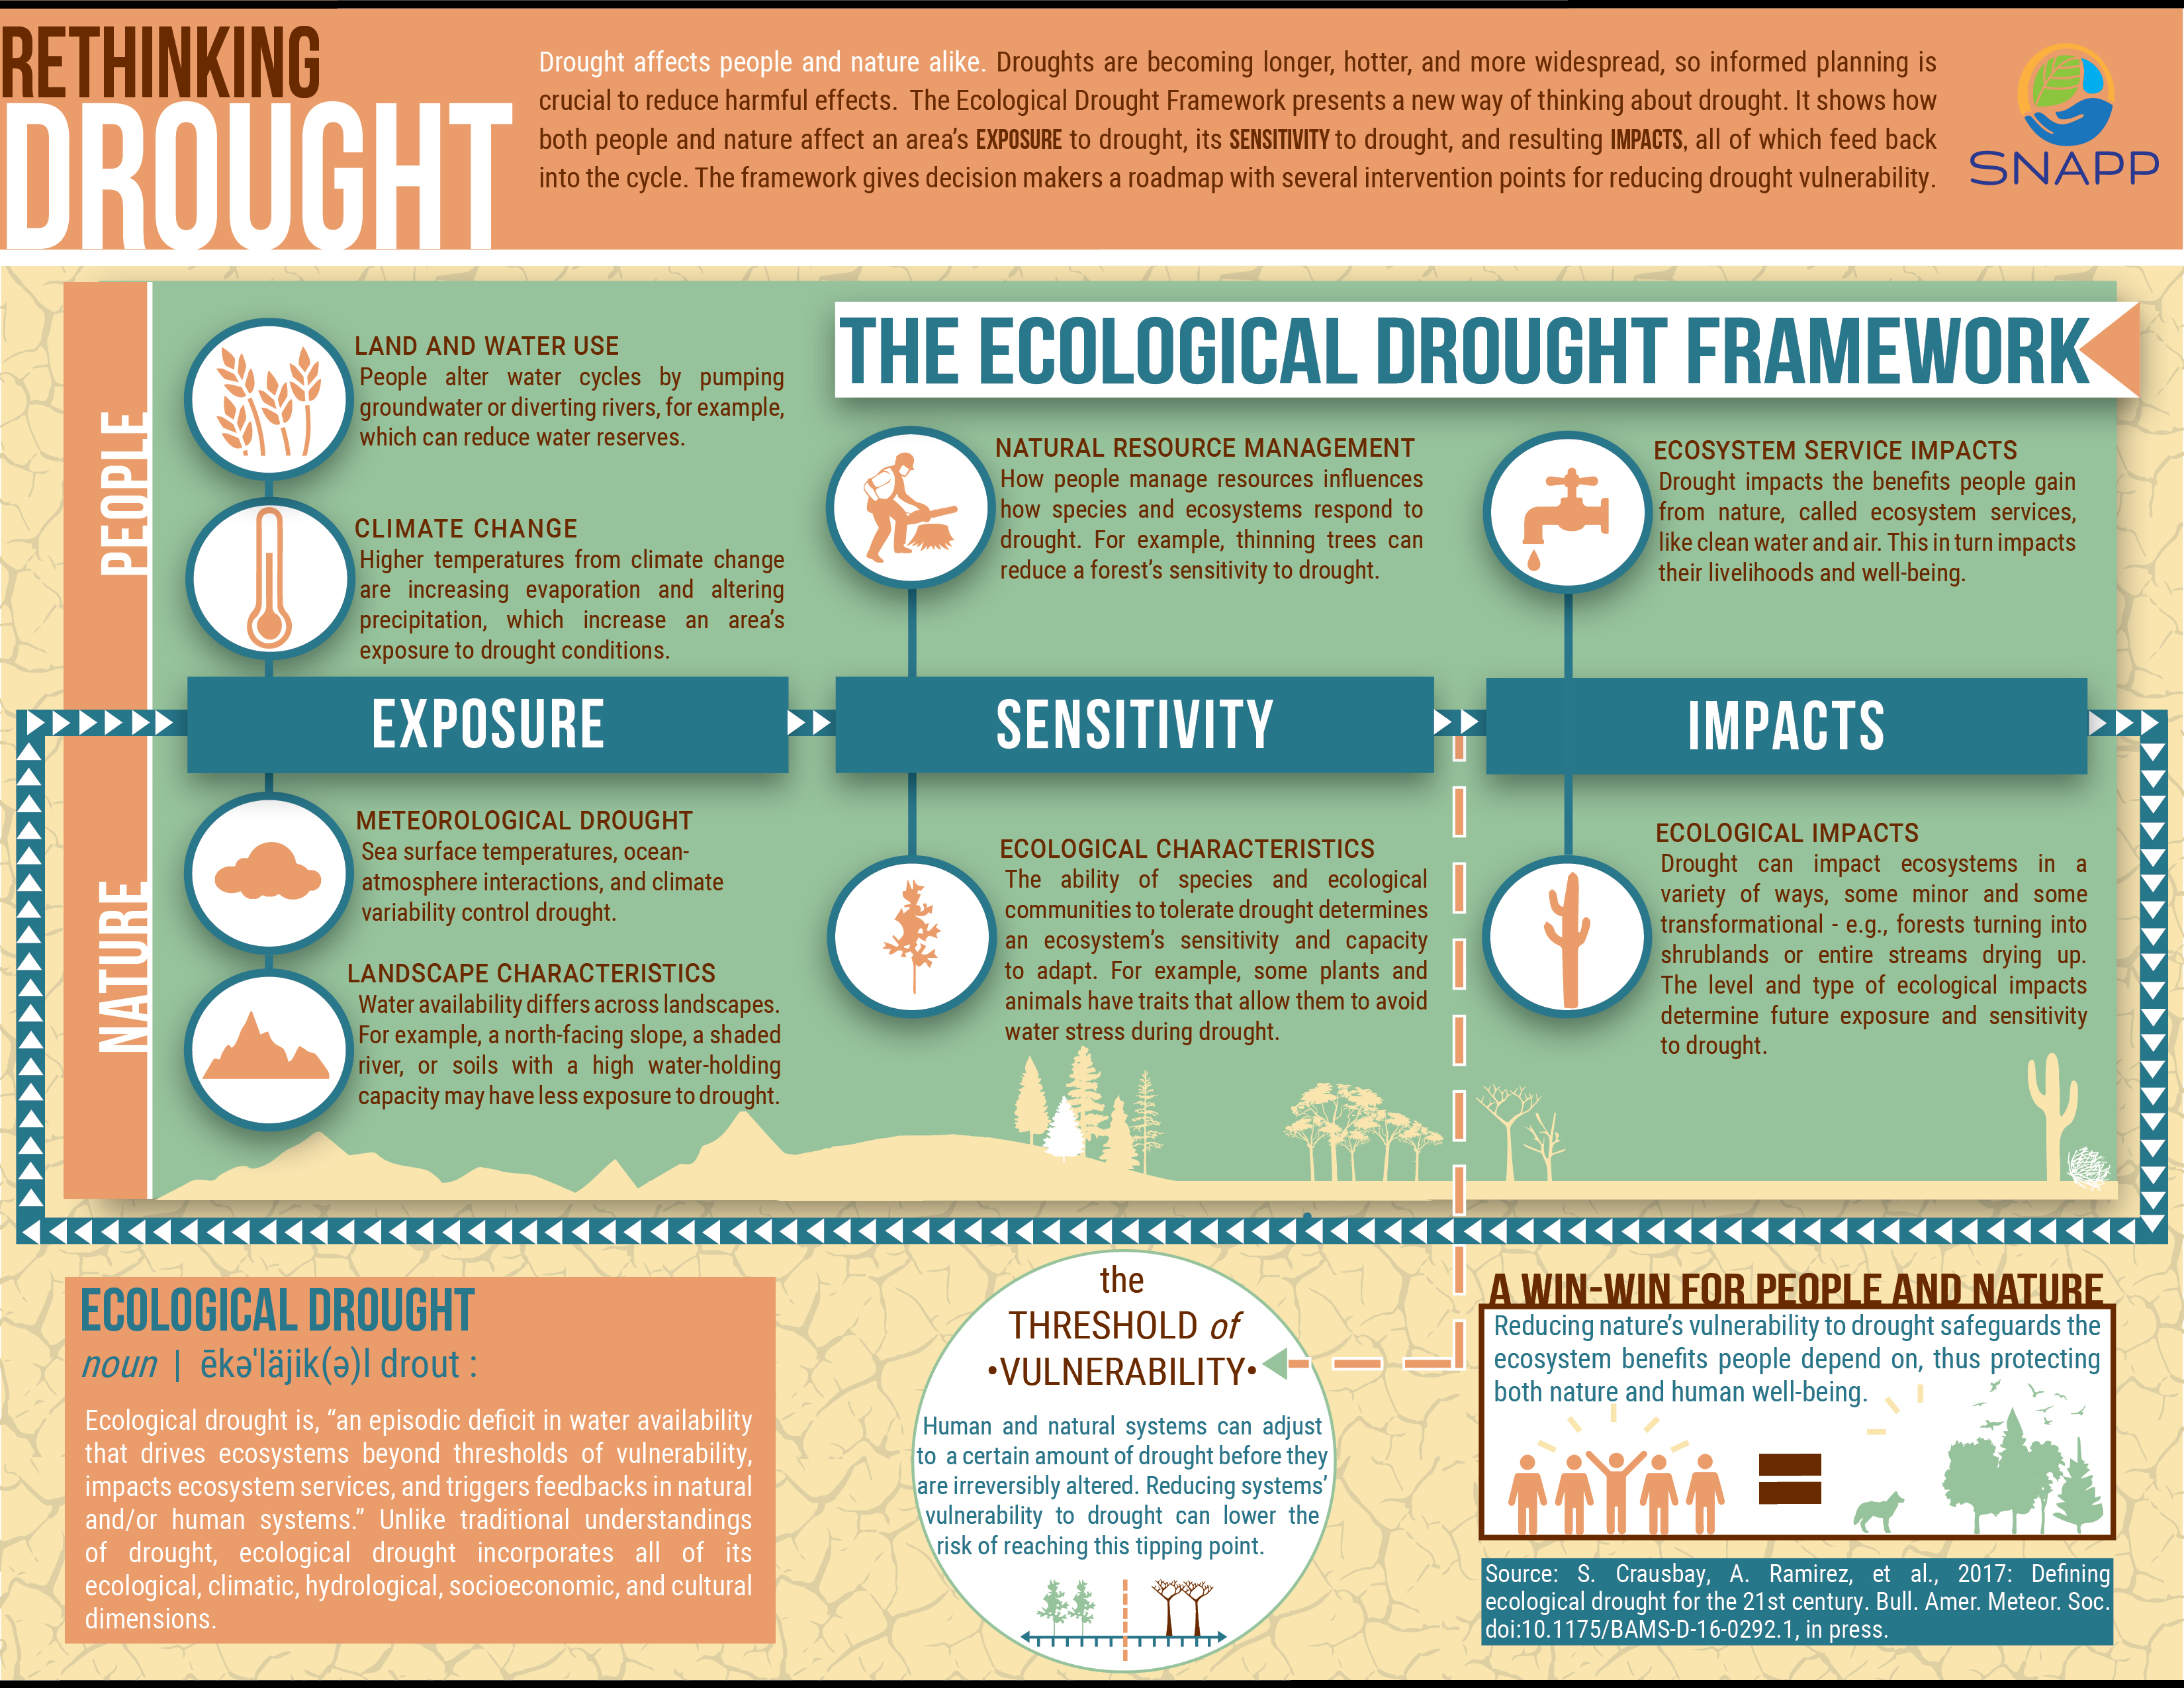 Researchers have developed a new definition of drought that integrates ecological, climatic, hydrological, socioeconomic and cultural dimensions of drought. | Graphic courtesy NCEAS